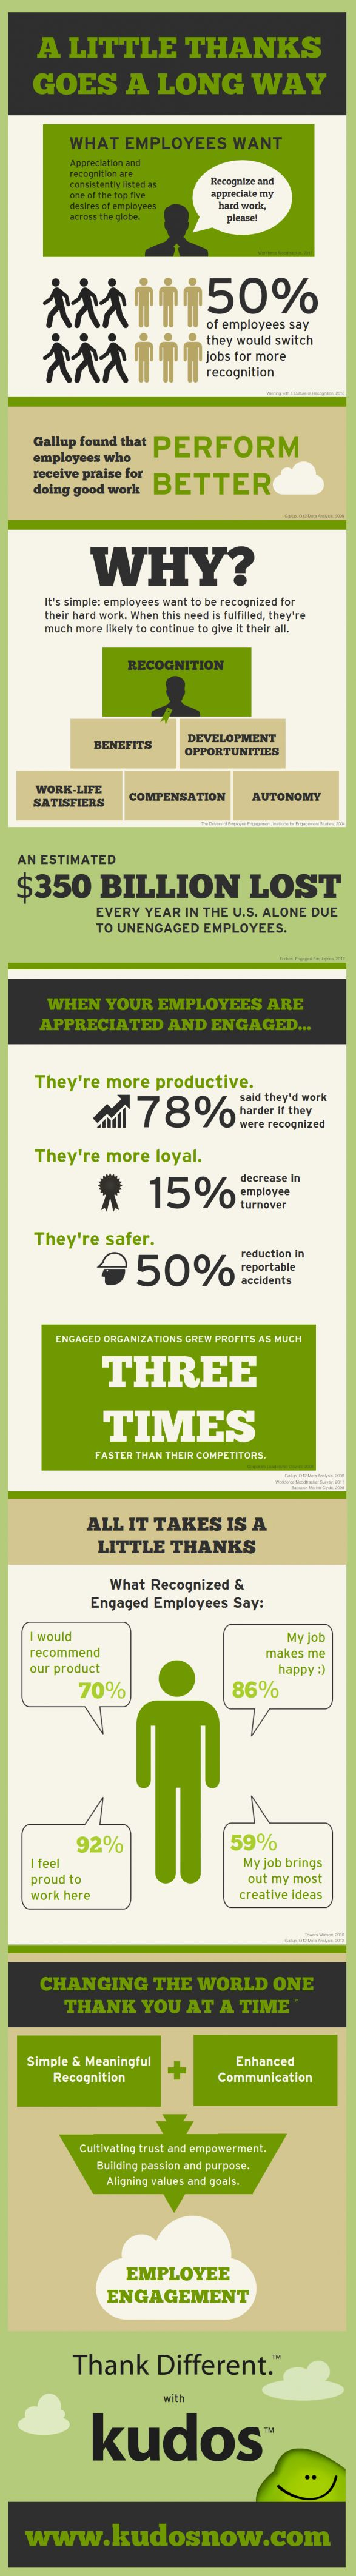 Employee Appreciation: A Little Thanks Goes a Long Way #infographic via @sparkhire